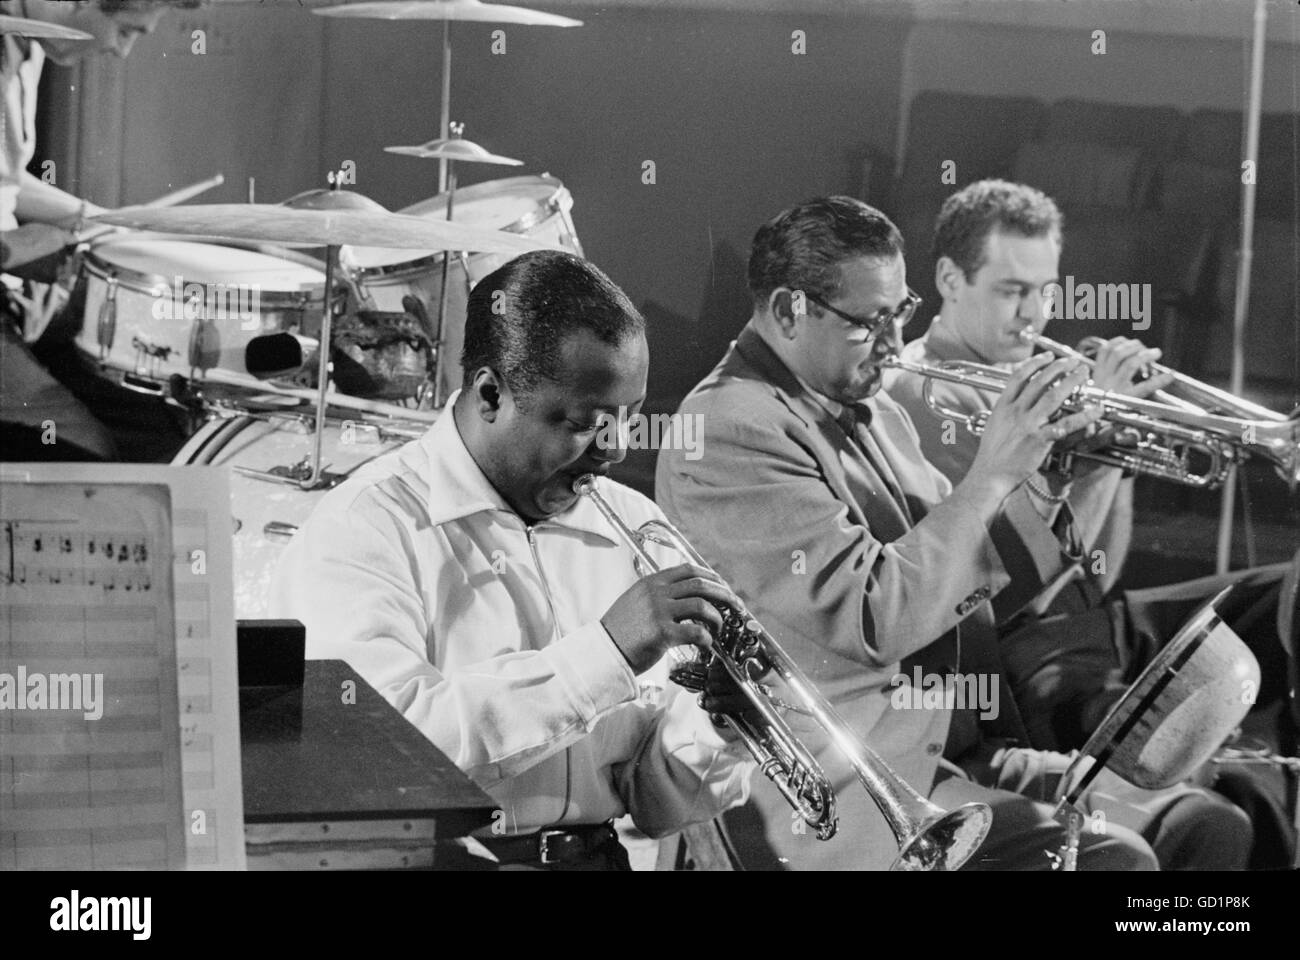 Charlie Shavers, Ziggy Elman, and Al Stewart - Stock Image